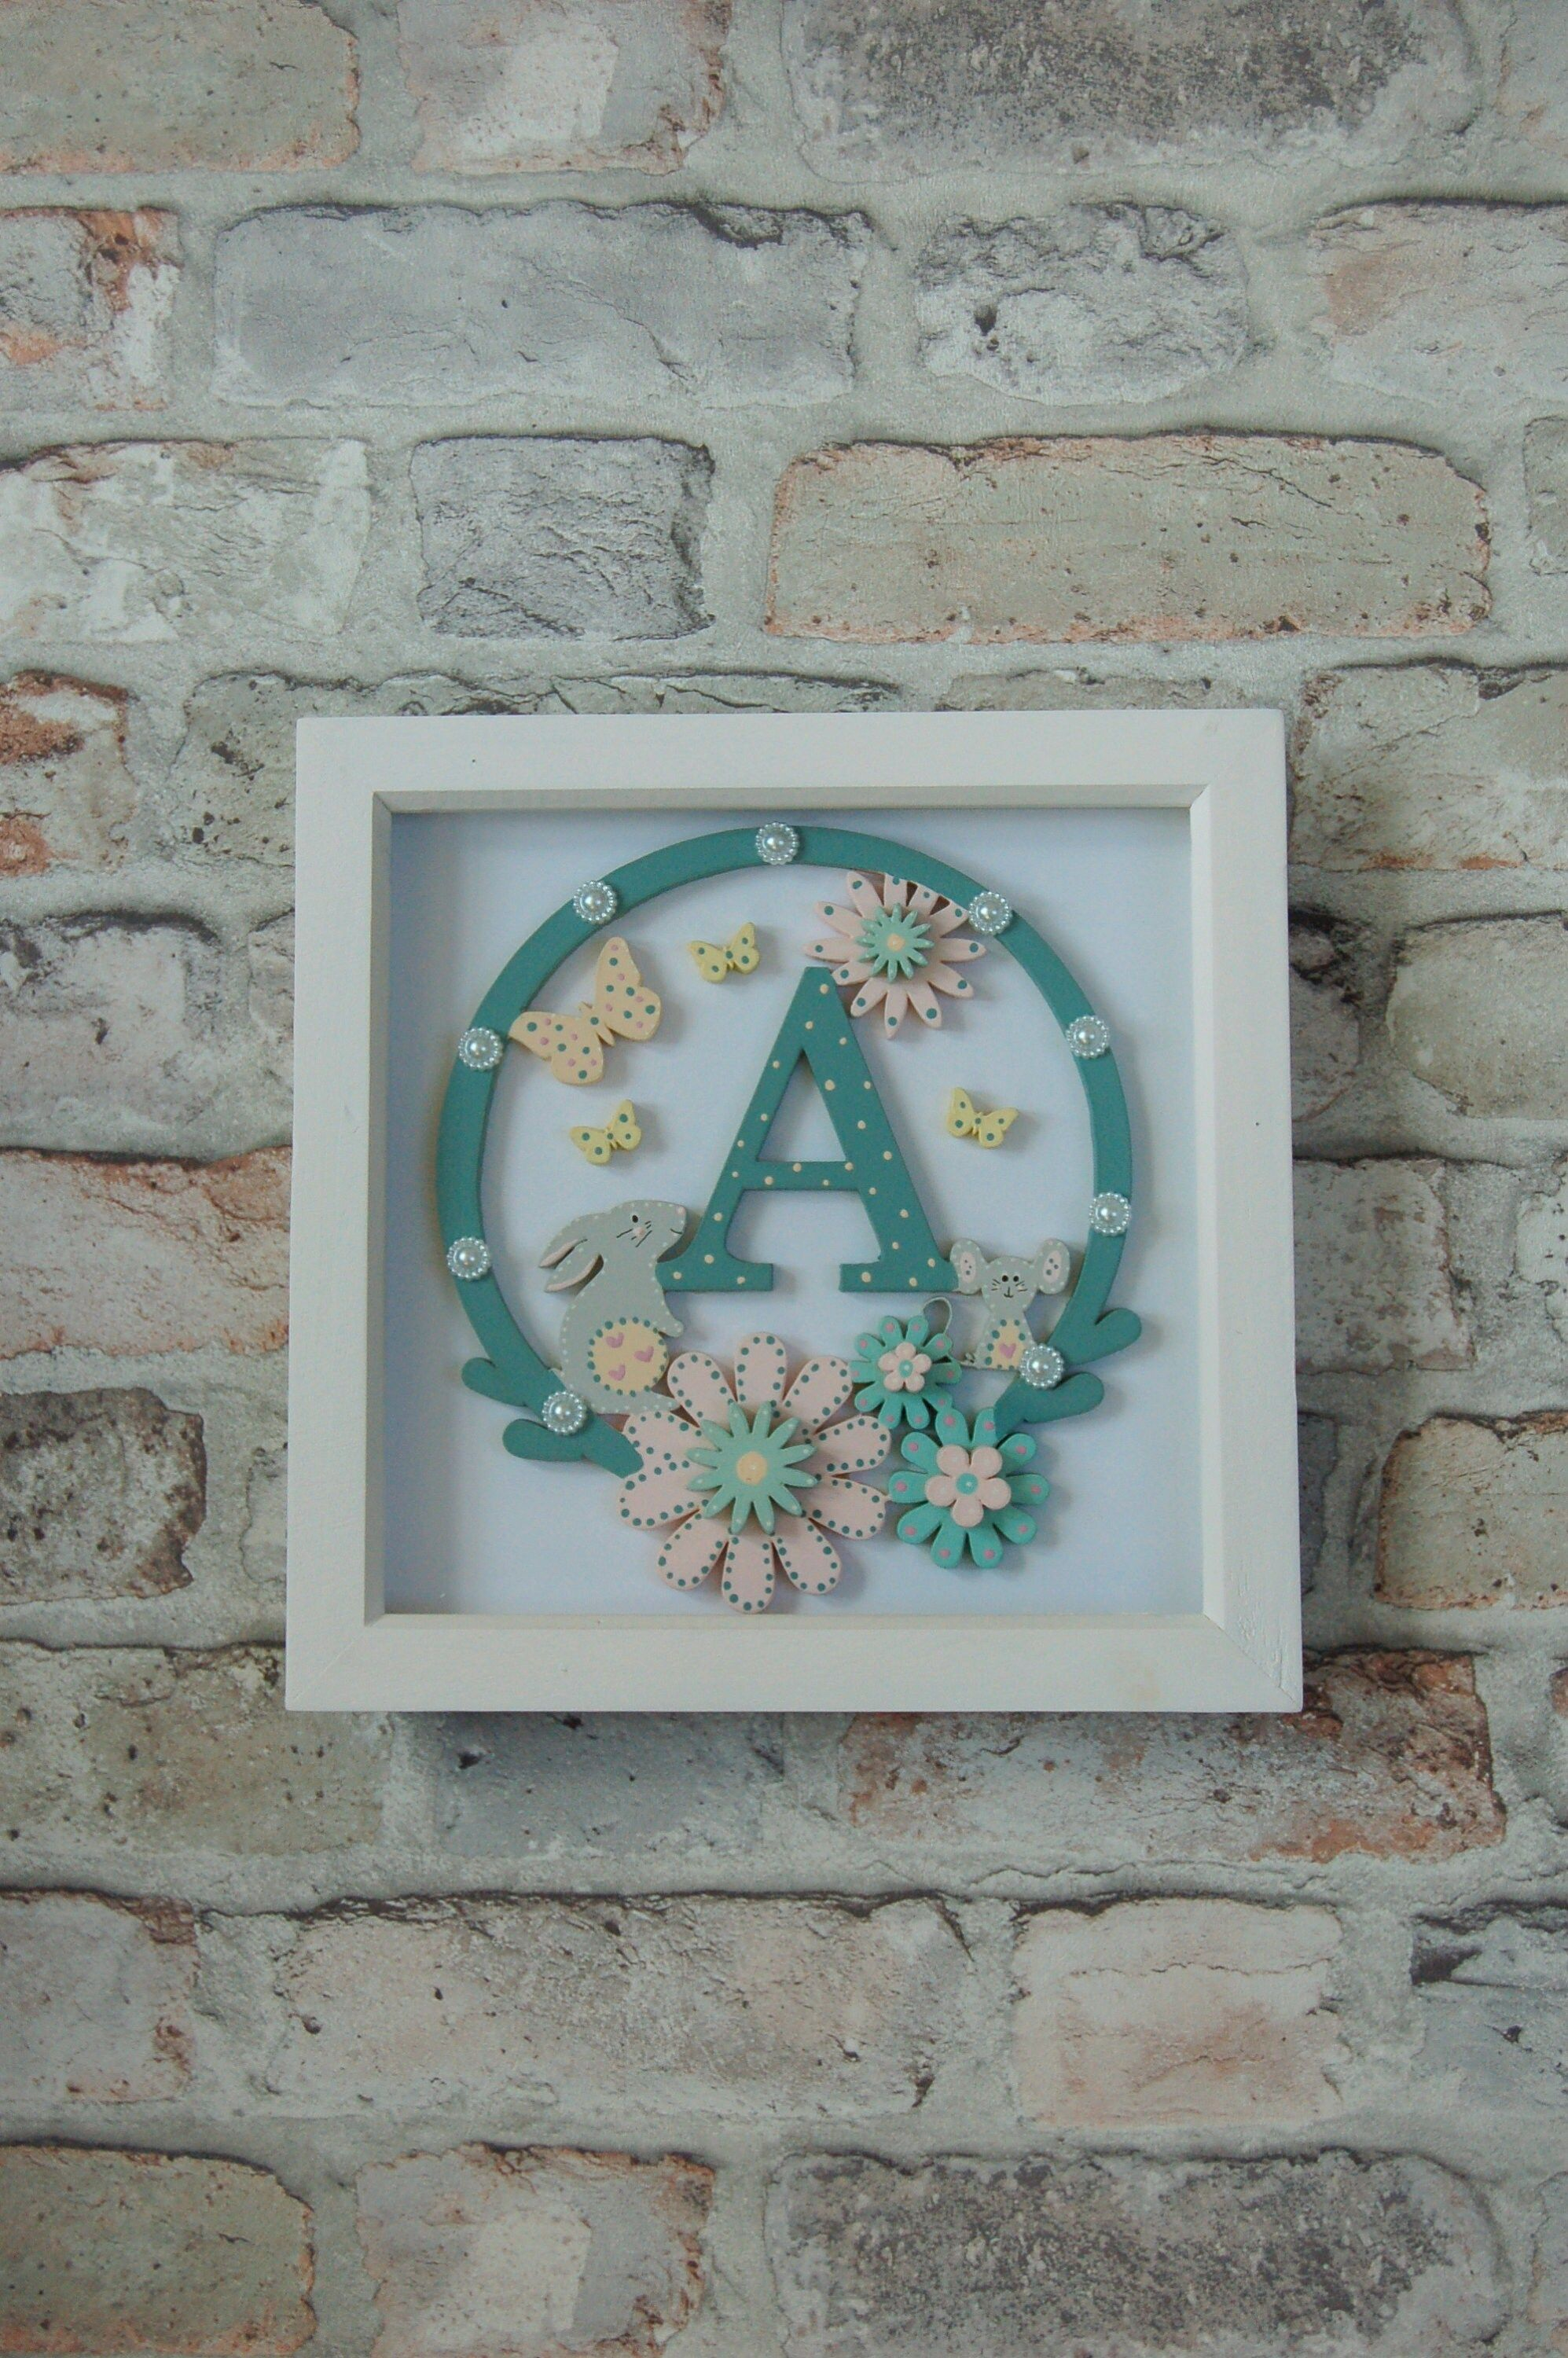 """""""Personalised Baby Wooden Letter in Frame Price is for ONE Frame PRODUCT DESCRIPTION Beautiful White Wooden Box Frame with precision laser cut wooden letter art inside designed by us. The design features a cute Bunny, Mouse and Floral Hoop. The wooden picture has been hand painted with great care and includes a mix of teal, pink and aqua. This is a lovely gift that can be treasured forever. Ideal as a New Baby, Christening, 1st Birthday or Special Occasion Gift. SIZE/ MEASUREMENTS The White Wood"""